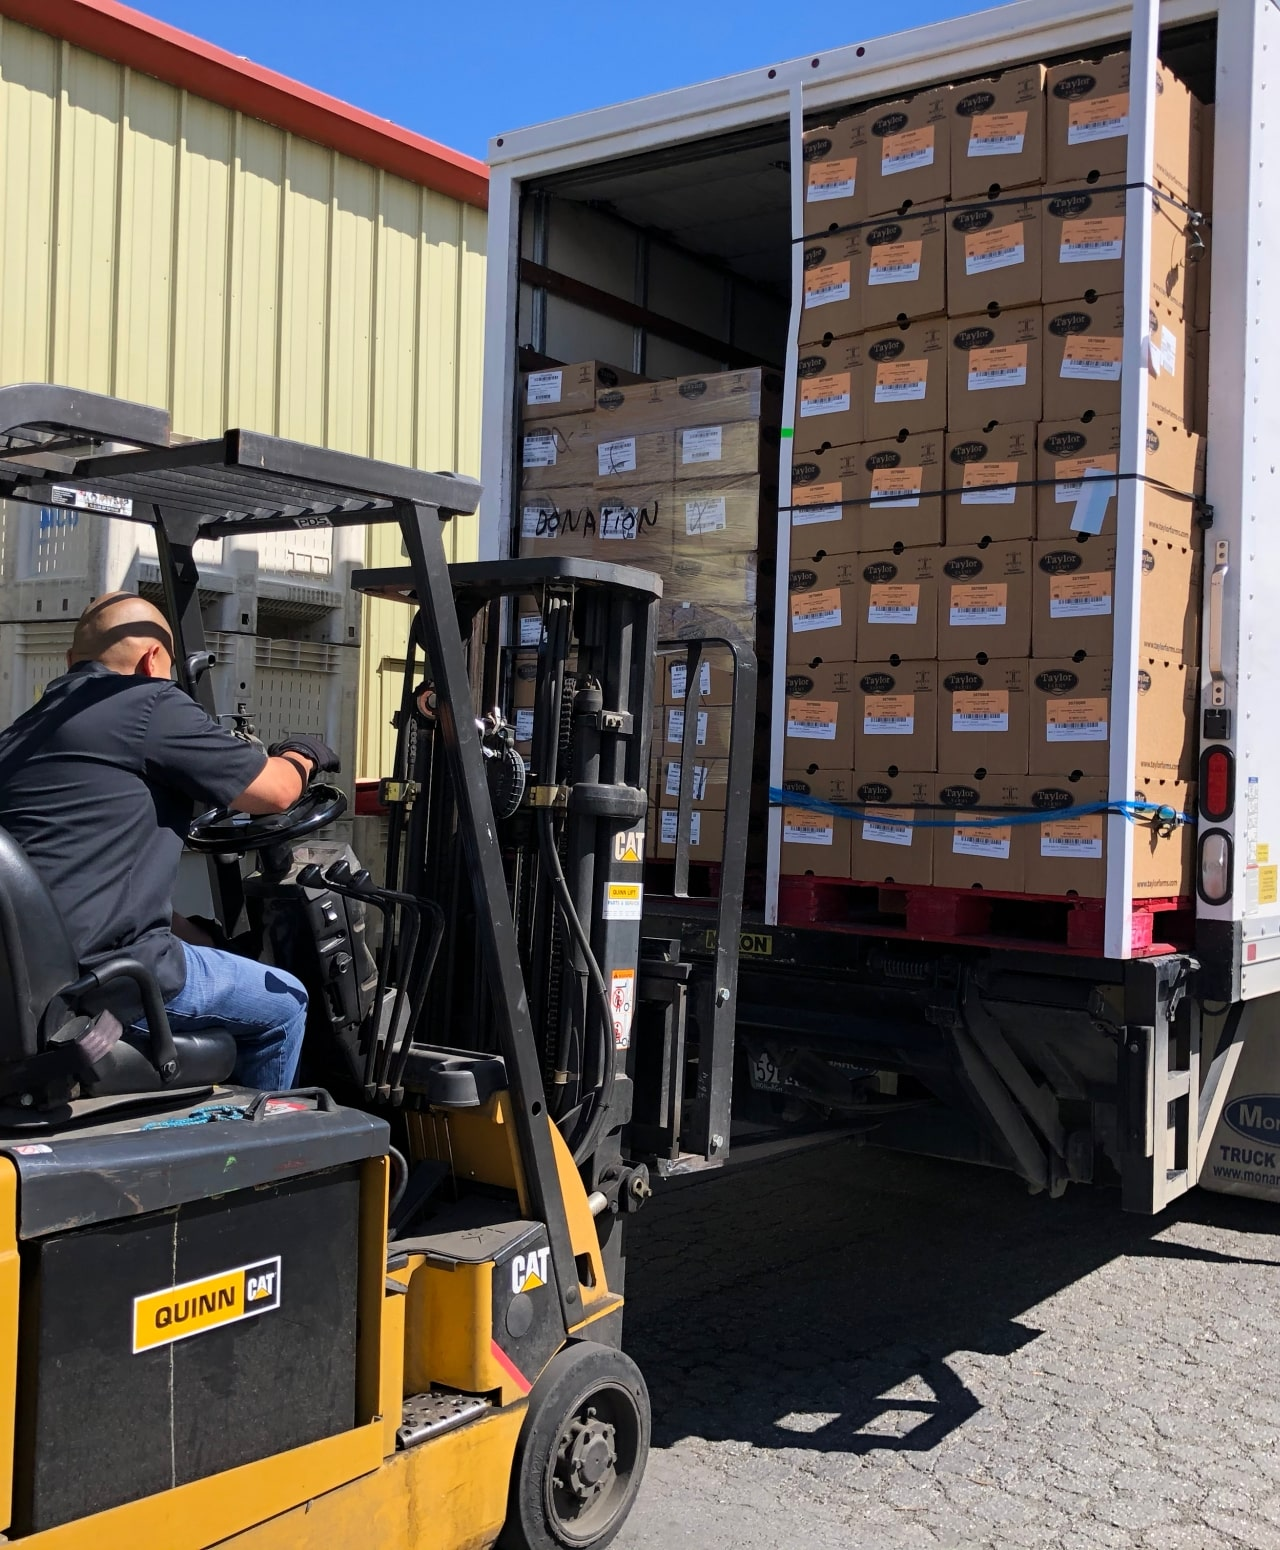 Food bank assets, pallets of foods off-loaded from truck with forklift